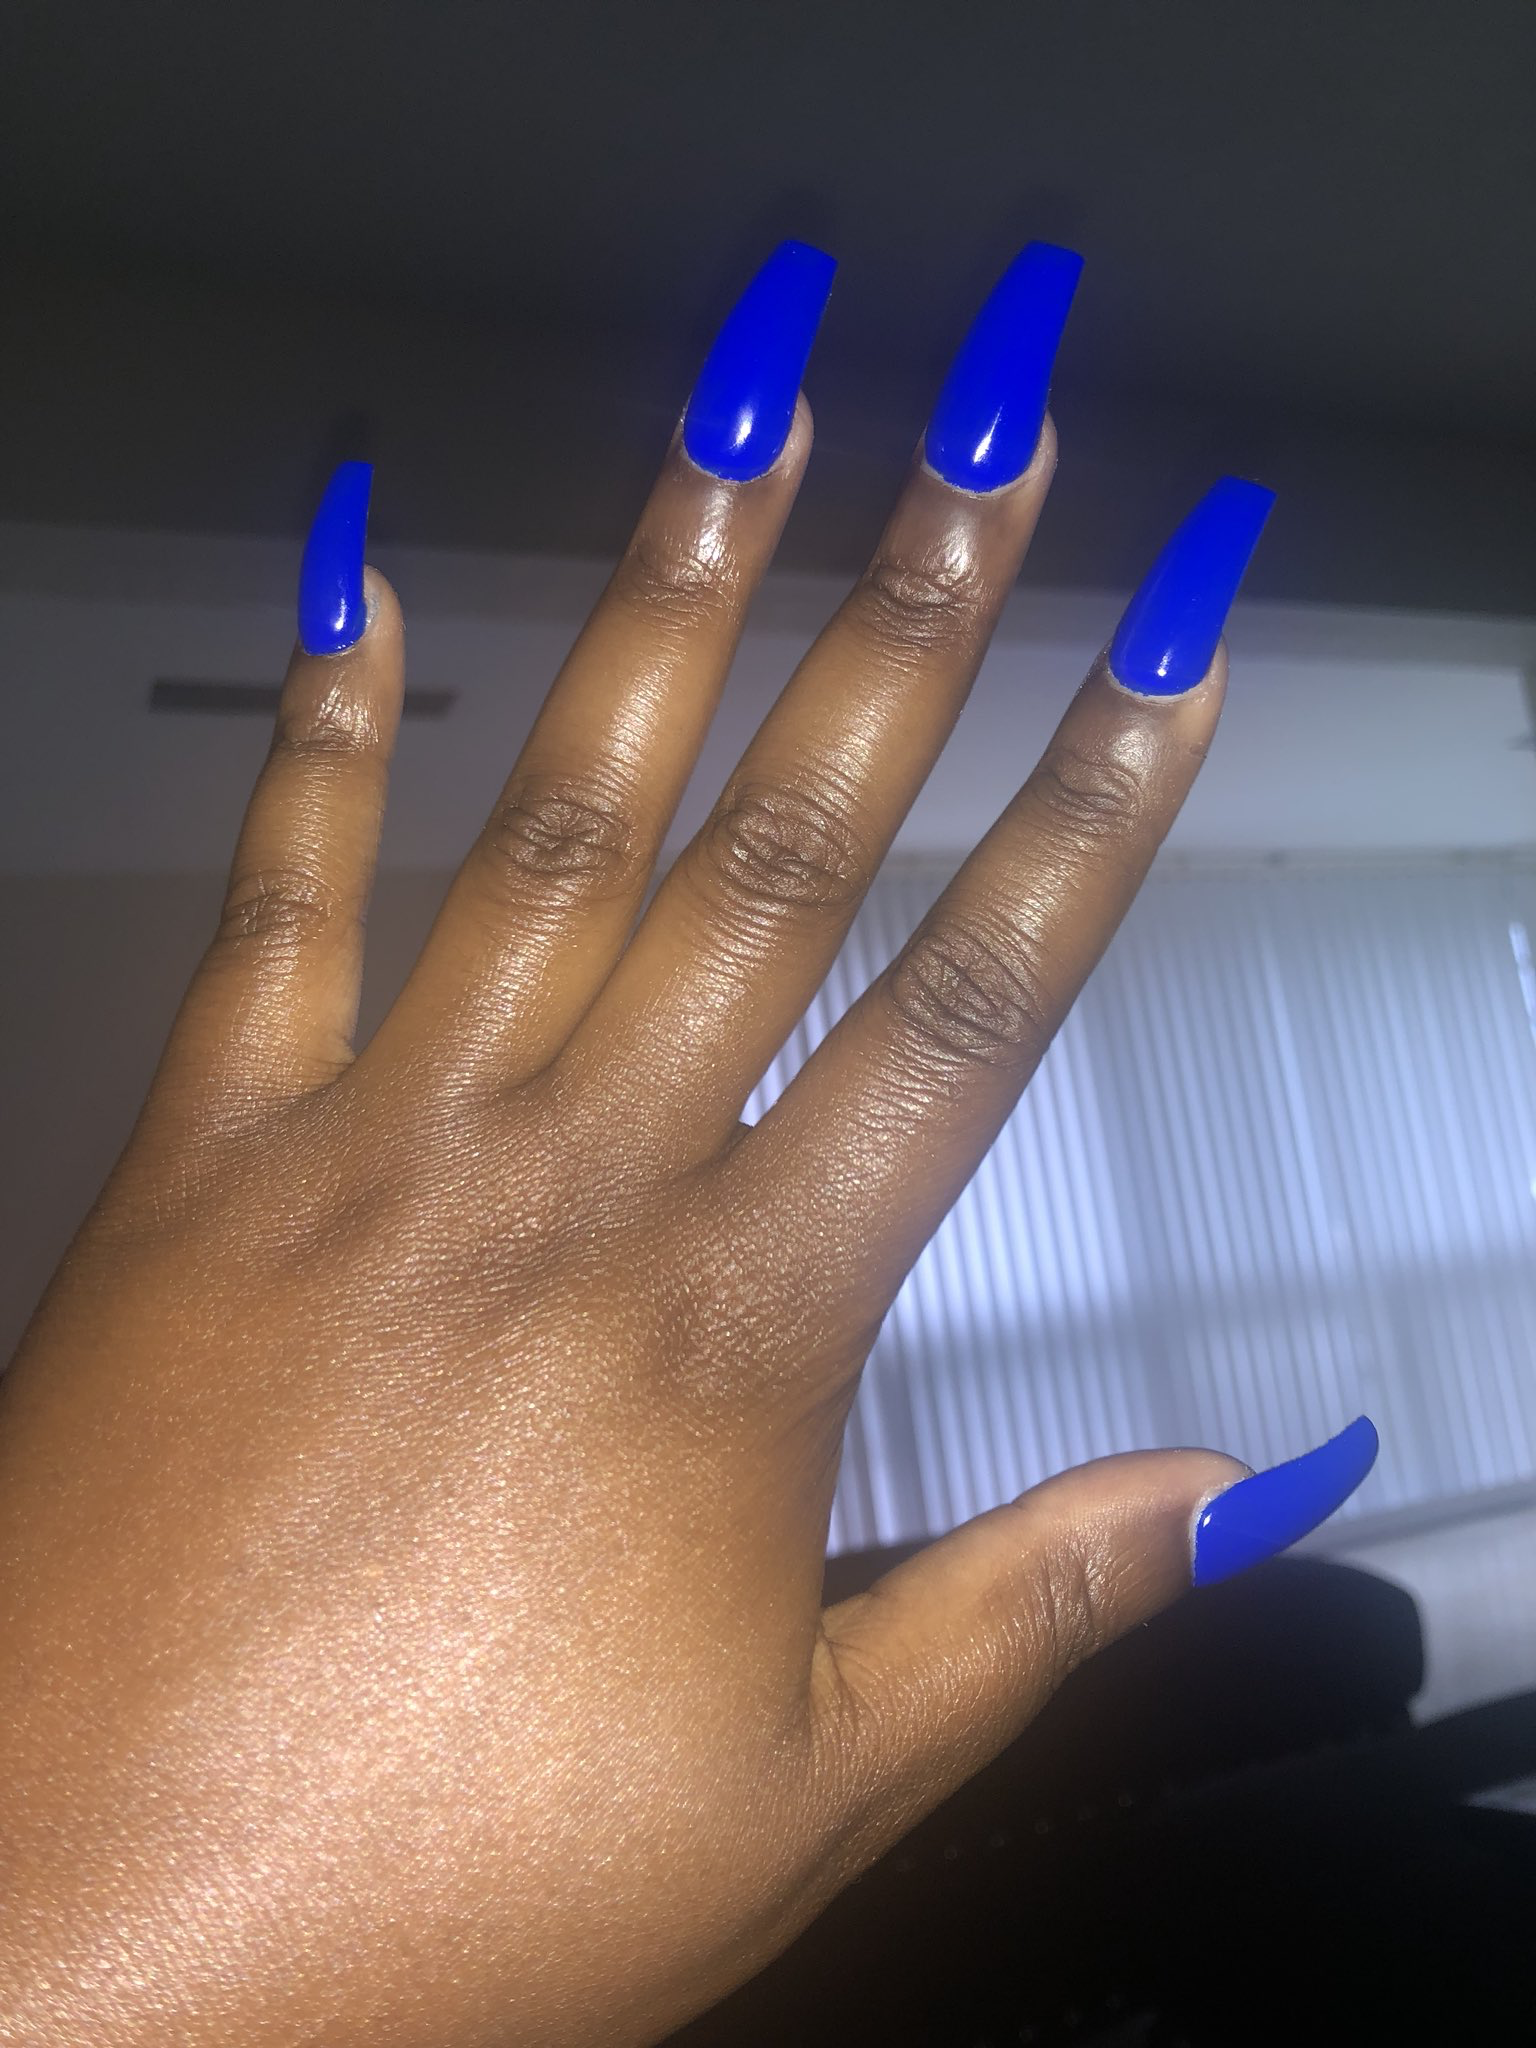 Check Out Simonelovee Blue Nails Manicure Nails